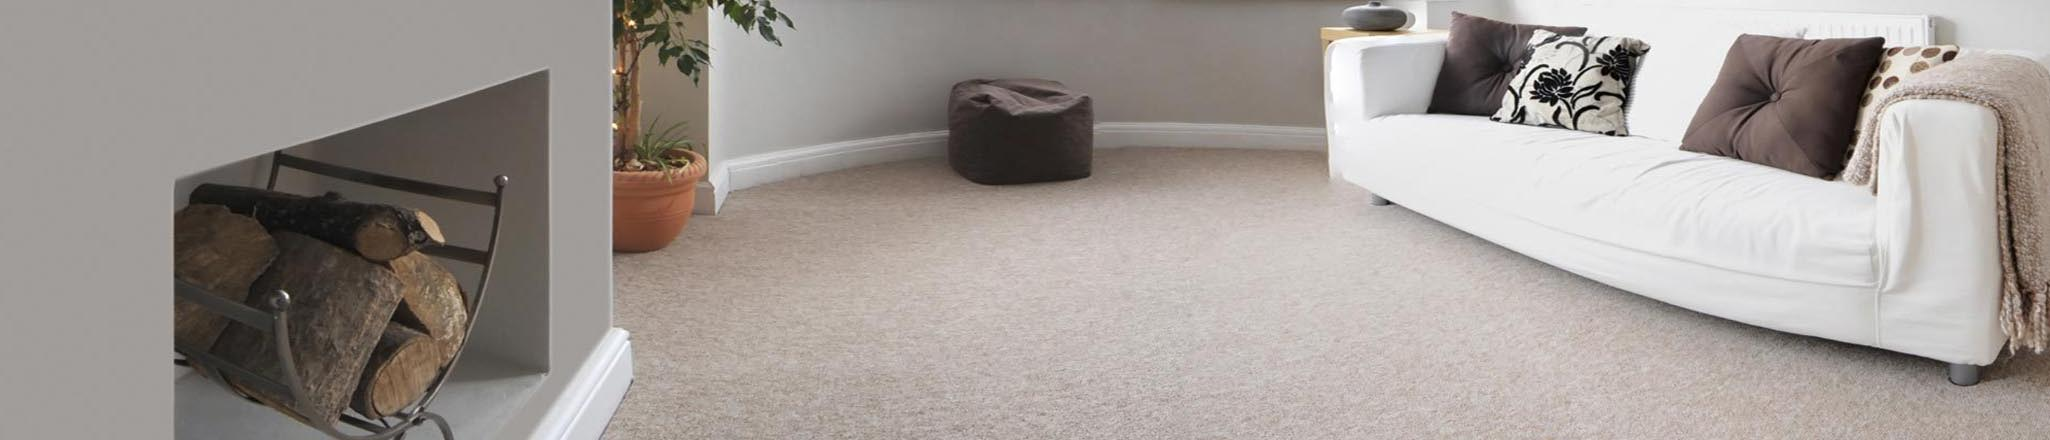 Carpet Cleaning As Low As 25 Per Room Call For Details